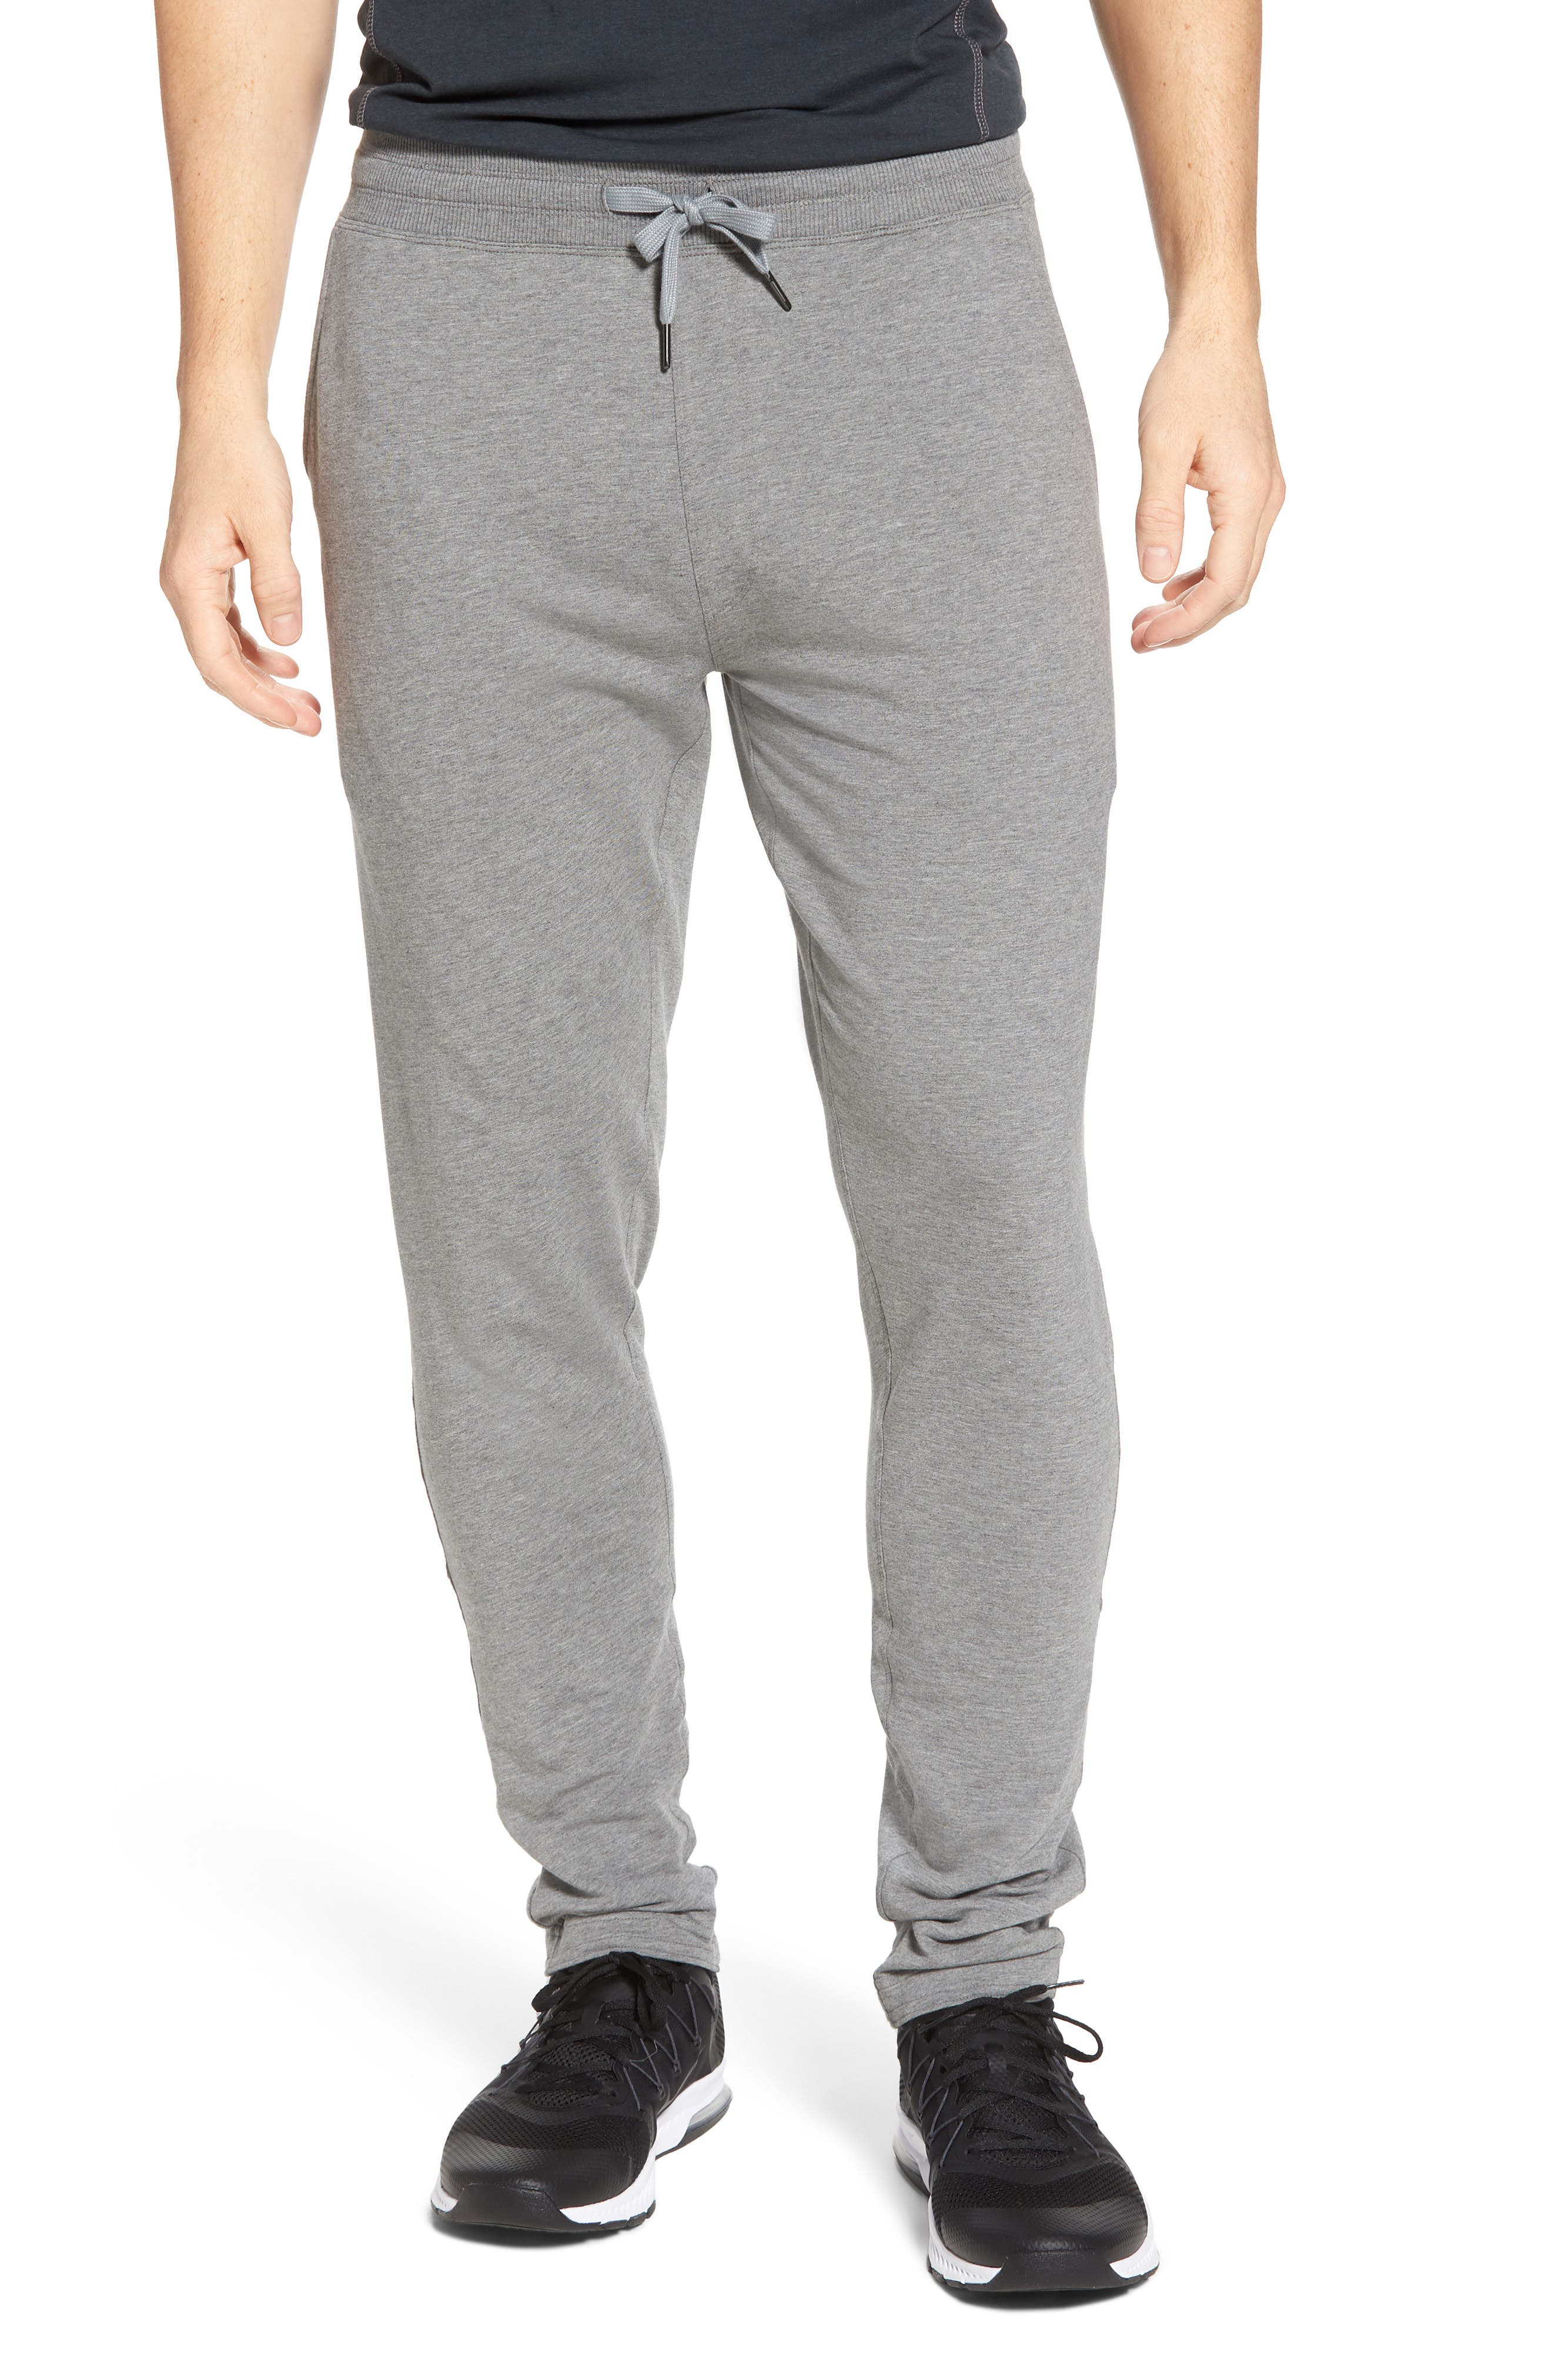 Legacy Lounge Pants,                             Main thumbnail 1, color,                             Heather Grey